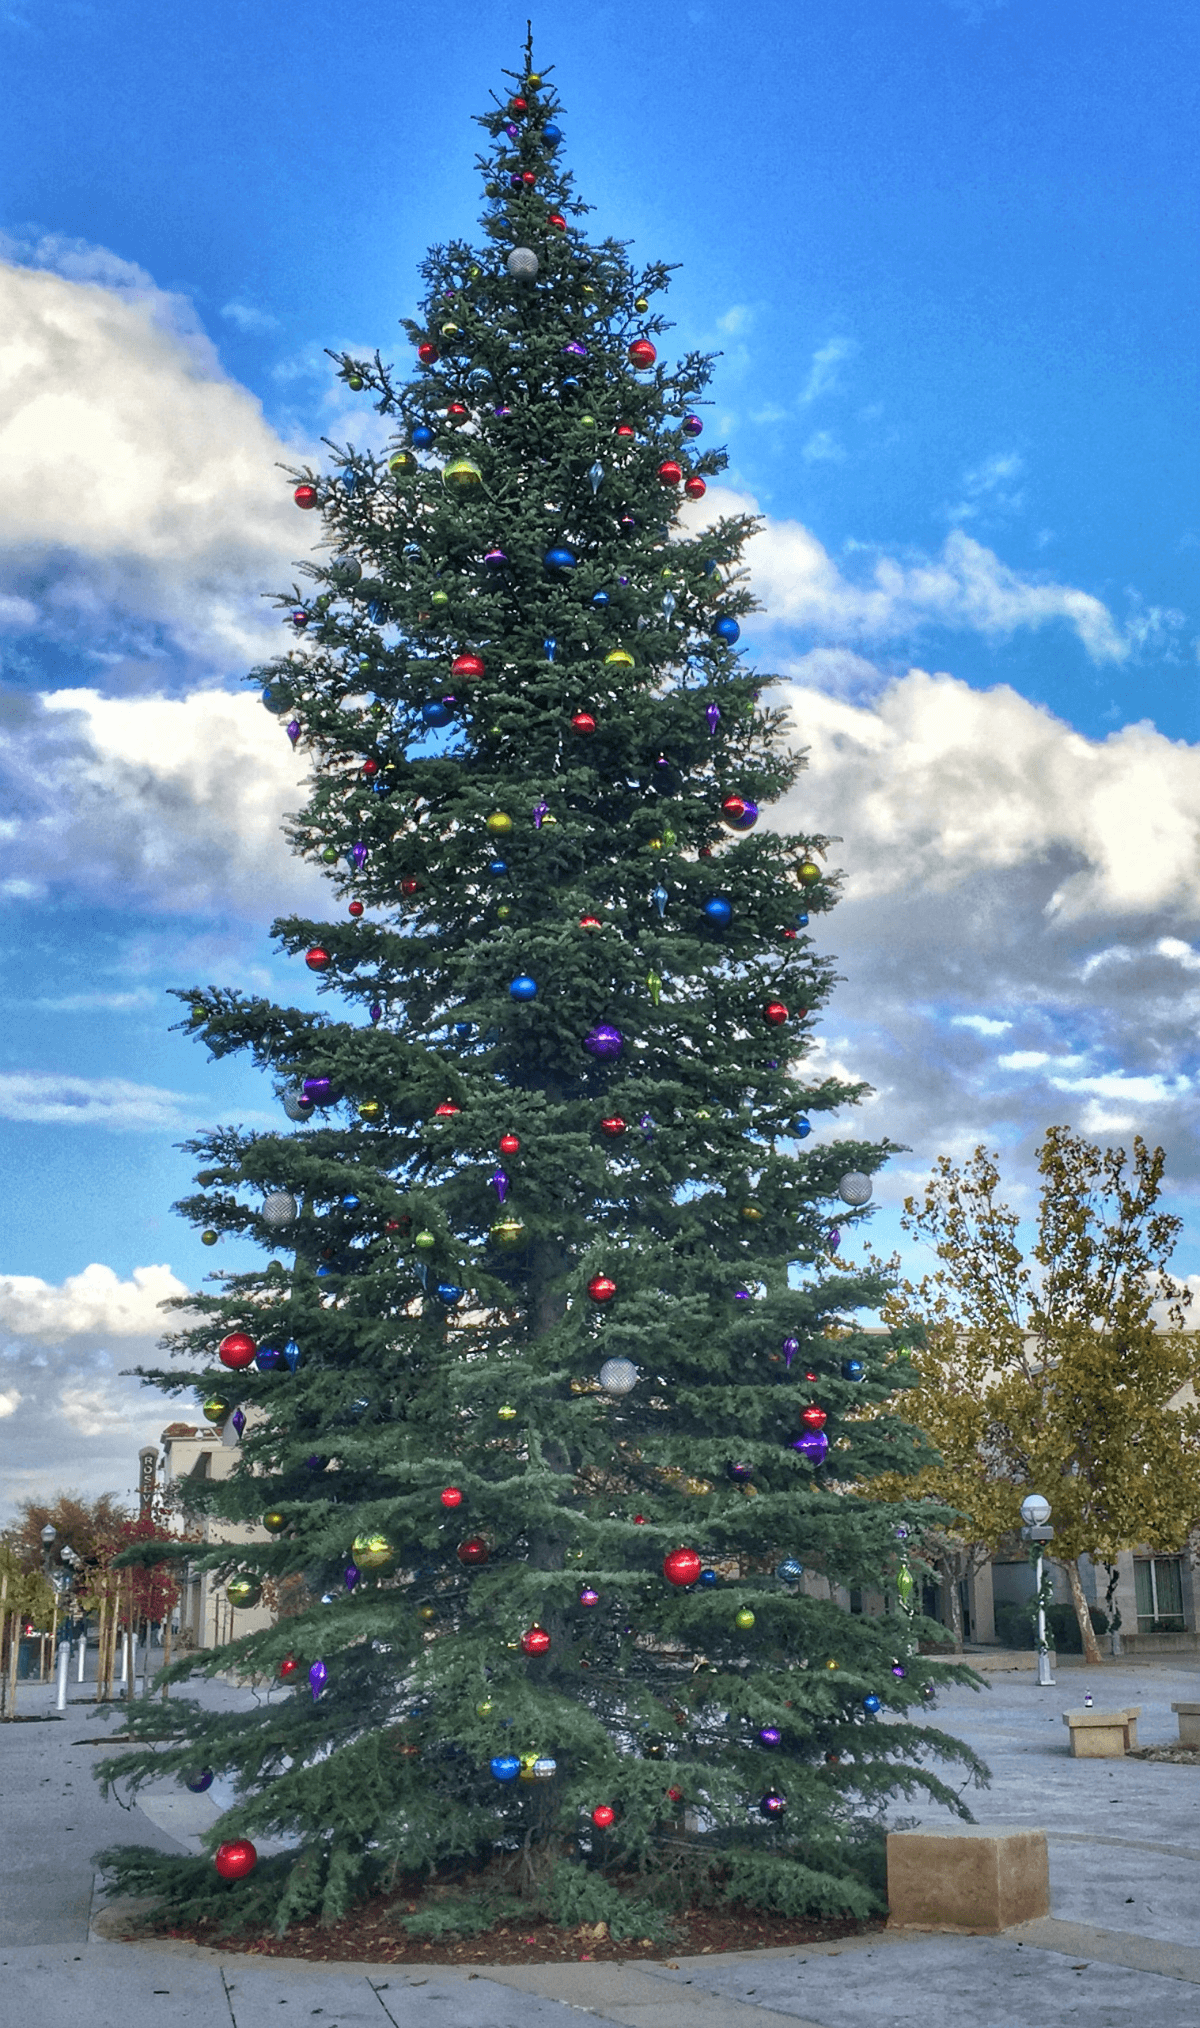 Roseville Real Estate Agent Kaye Swain sharing Roseville Christmas Tree Downtown Square